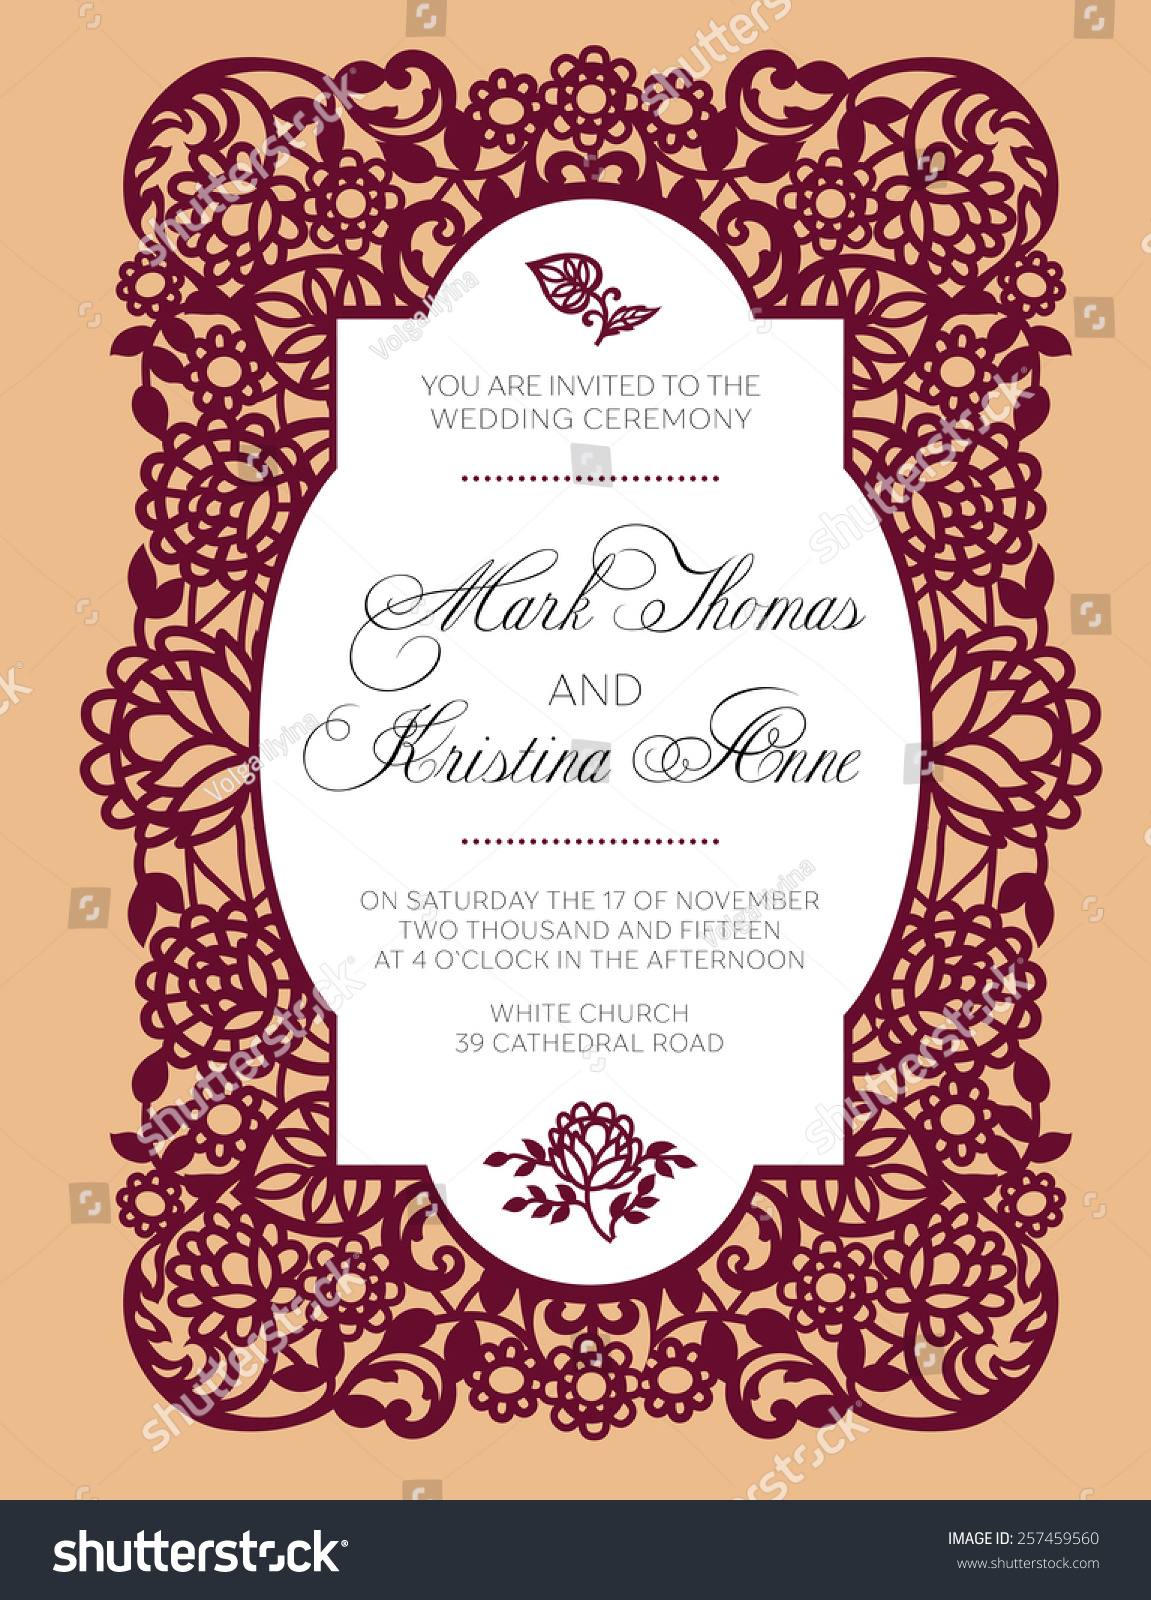 Pattern Wedding Invitation Exquisite Lace Stock Photo (Photo, Vector ...